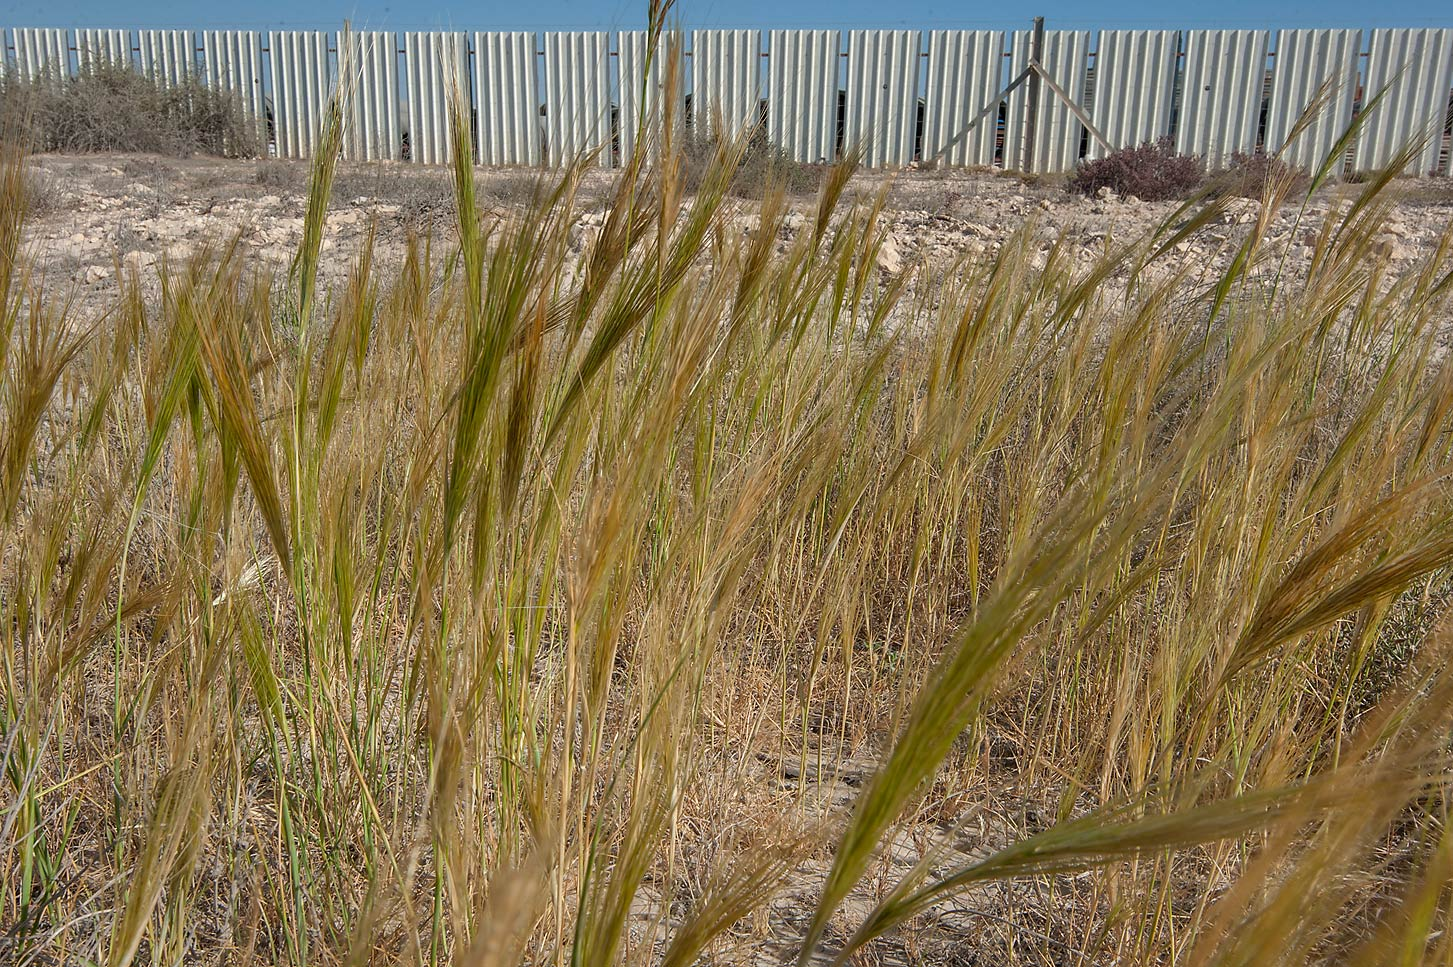 Spear grass (Stipa capensis, local names samma...depression of a road to Zubara. Qatar